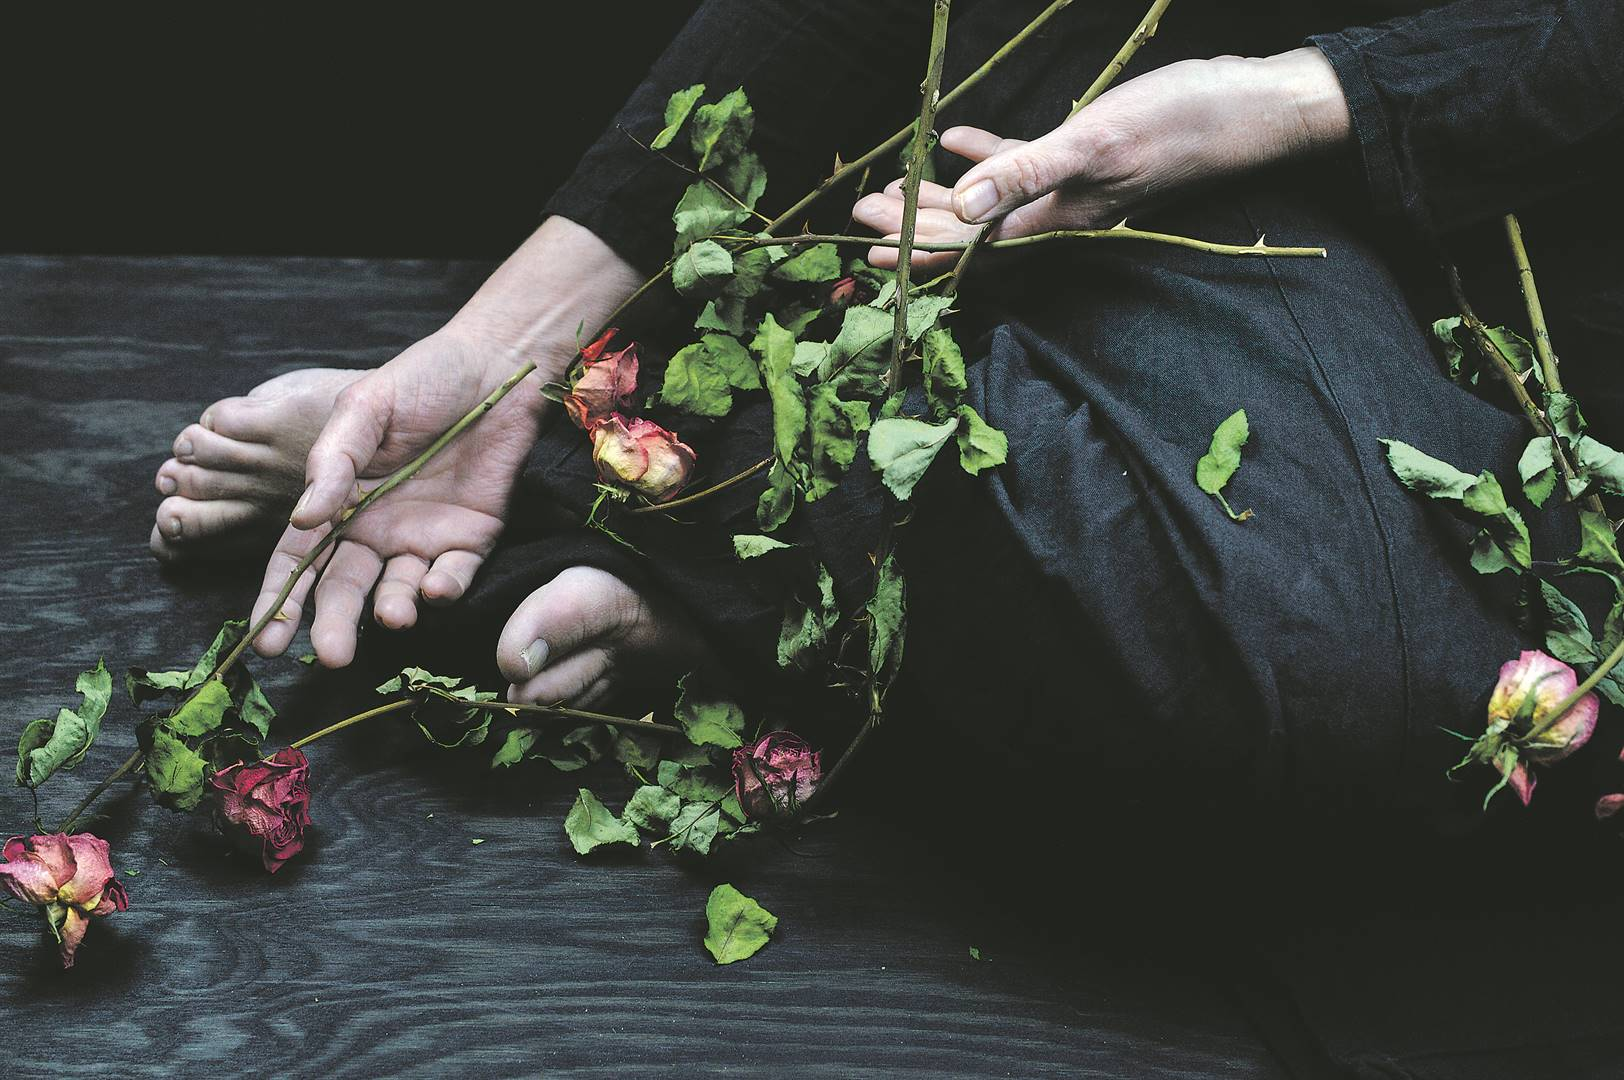 In some cultures, dead roses and women dressed in black are symbols of mourning for widows. Men are not subjected to similar mourning rituals. Picture: iStock